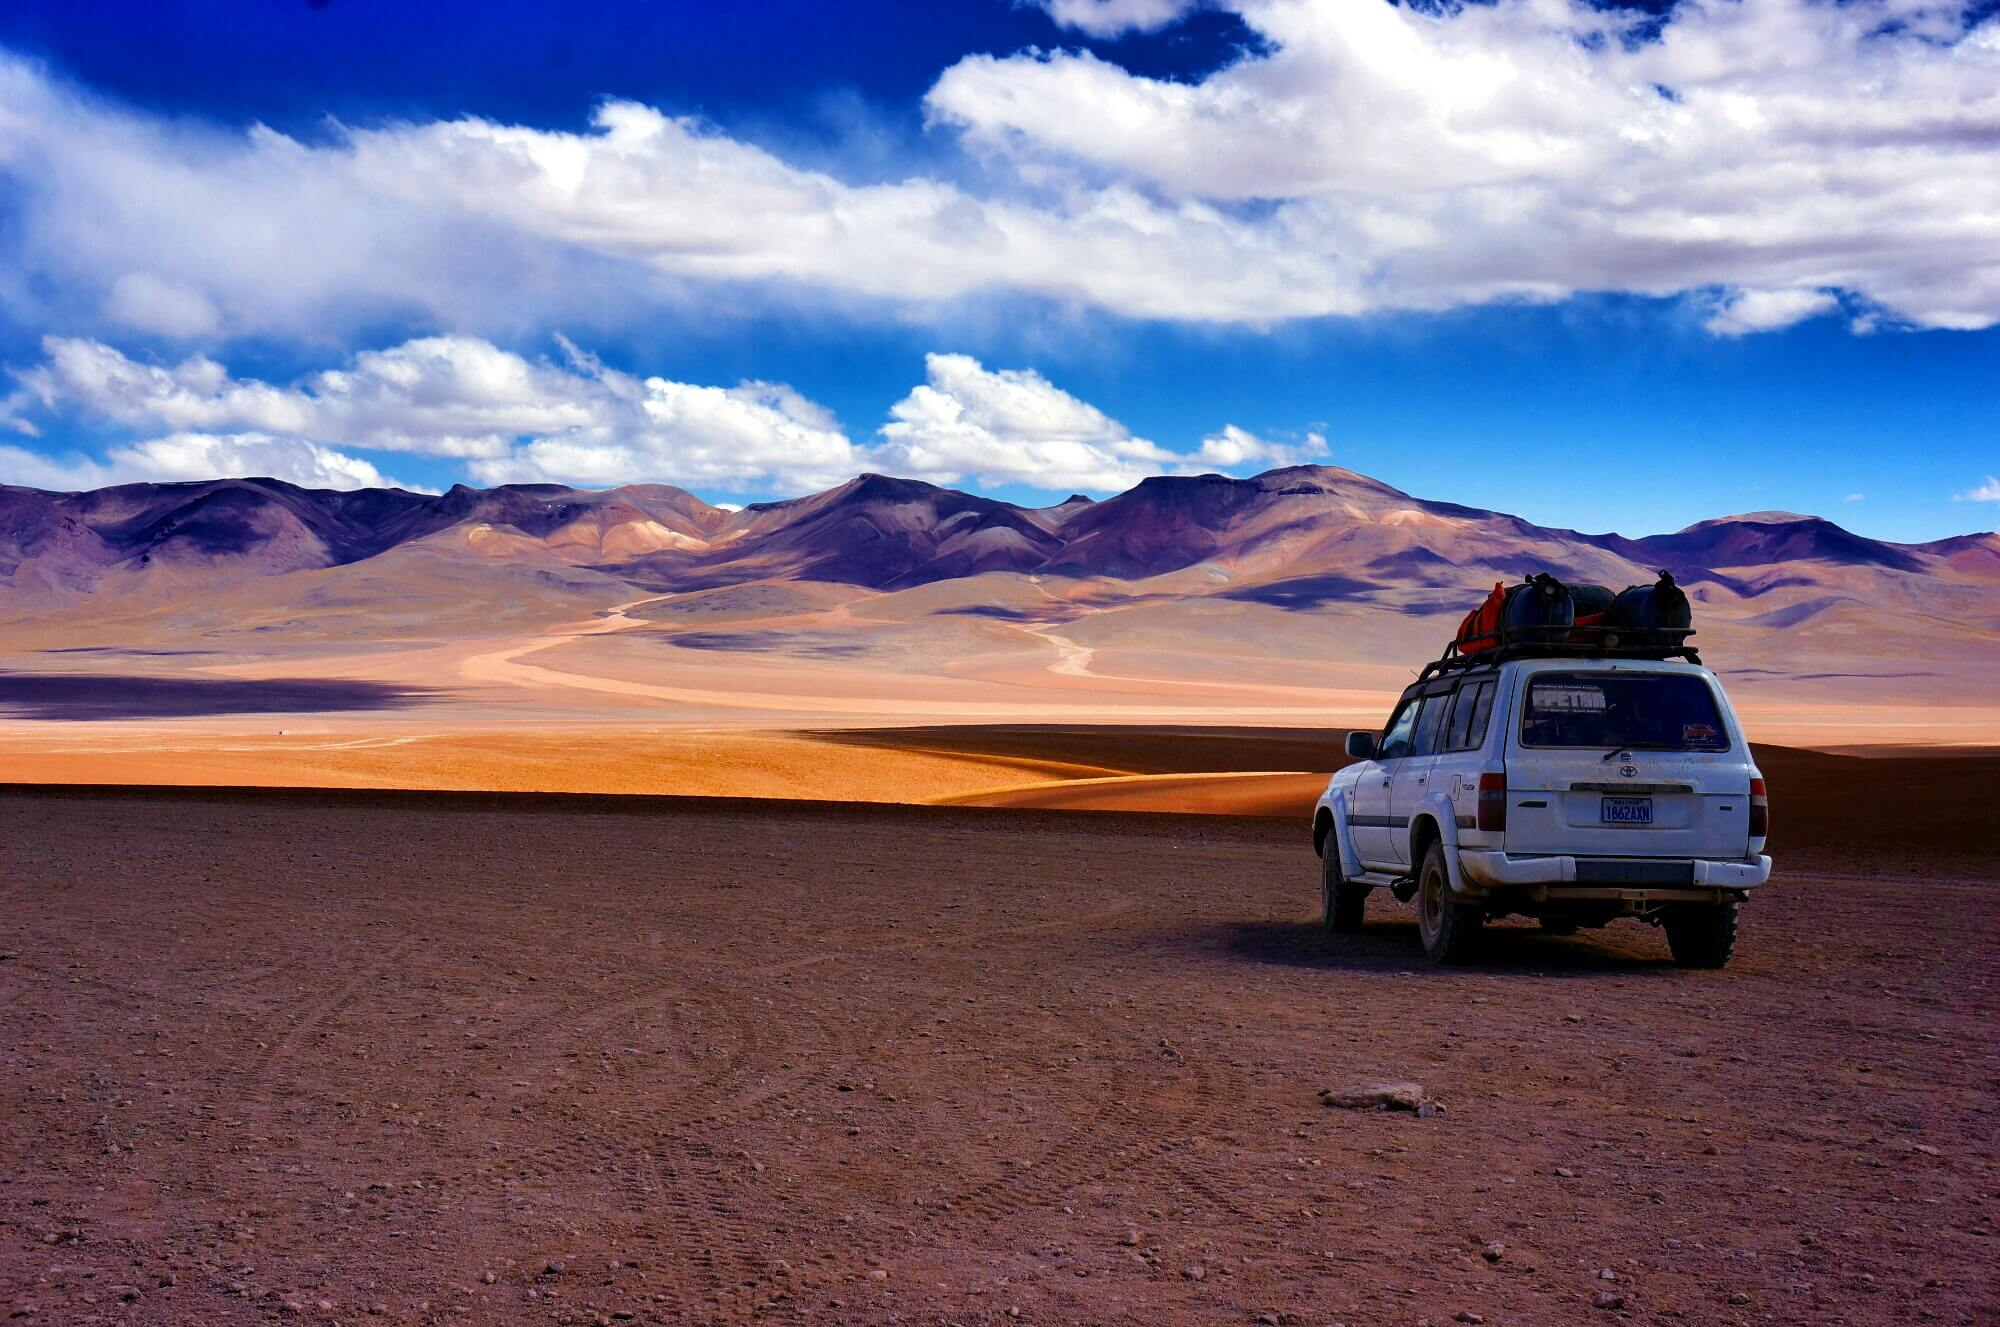 south lipez, bolivia